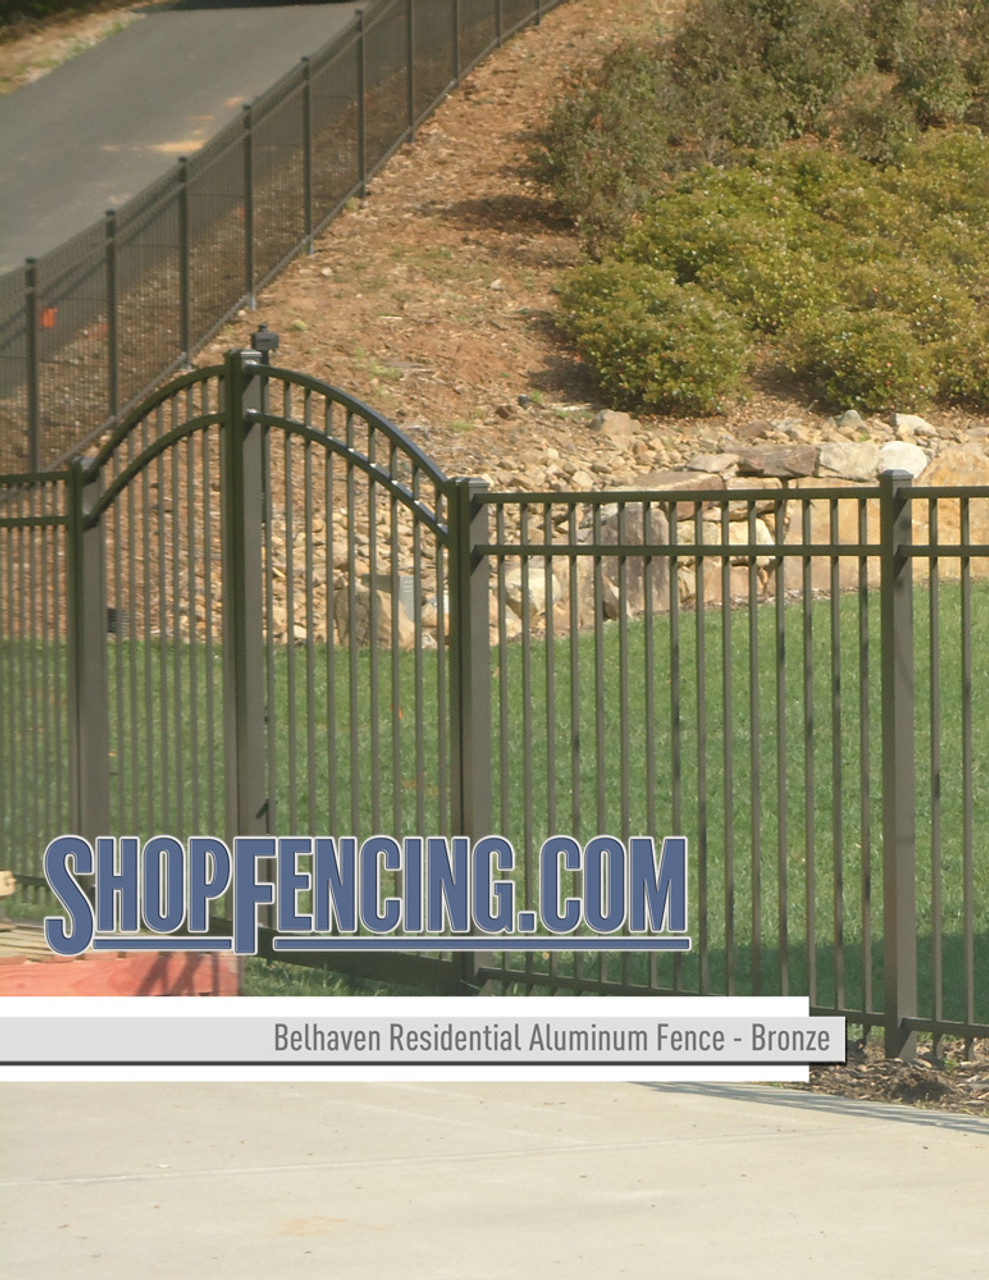 Bronze Residential Belhaven Aluminum Fencing From ShopFencing.com